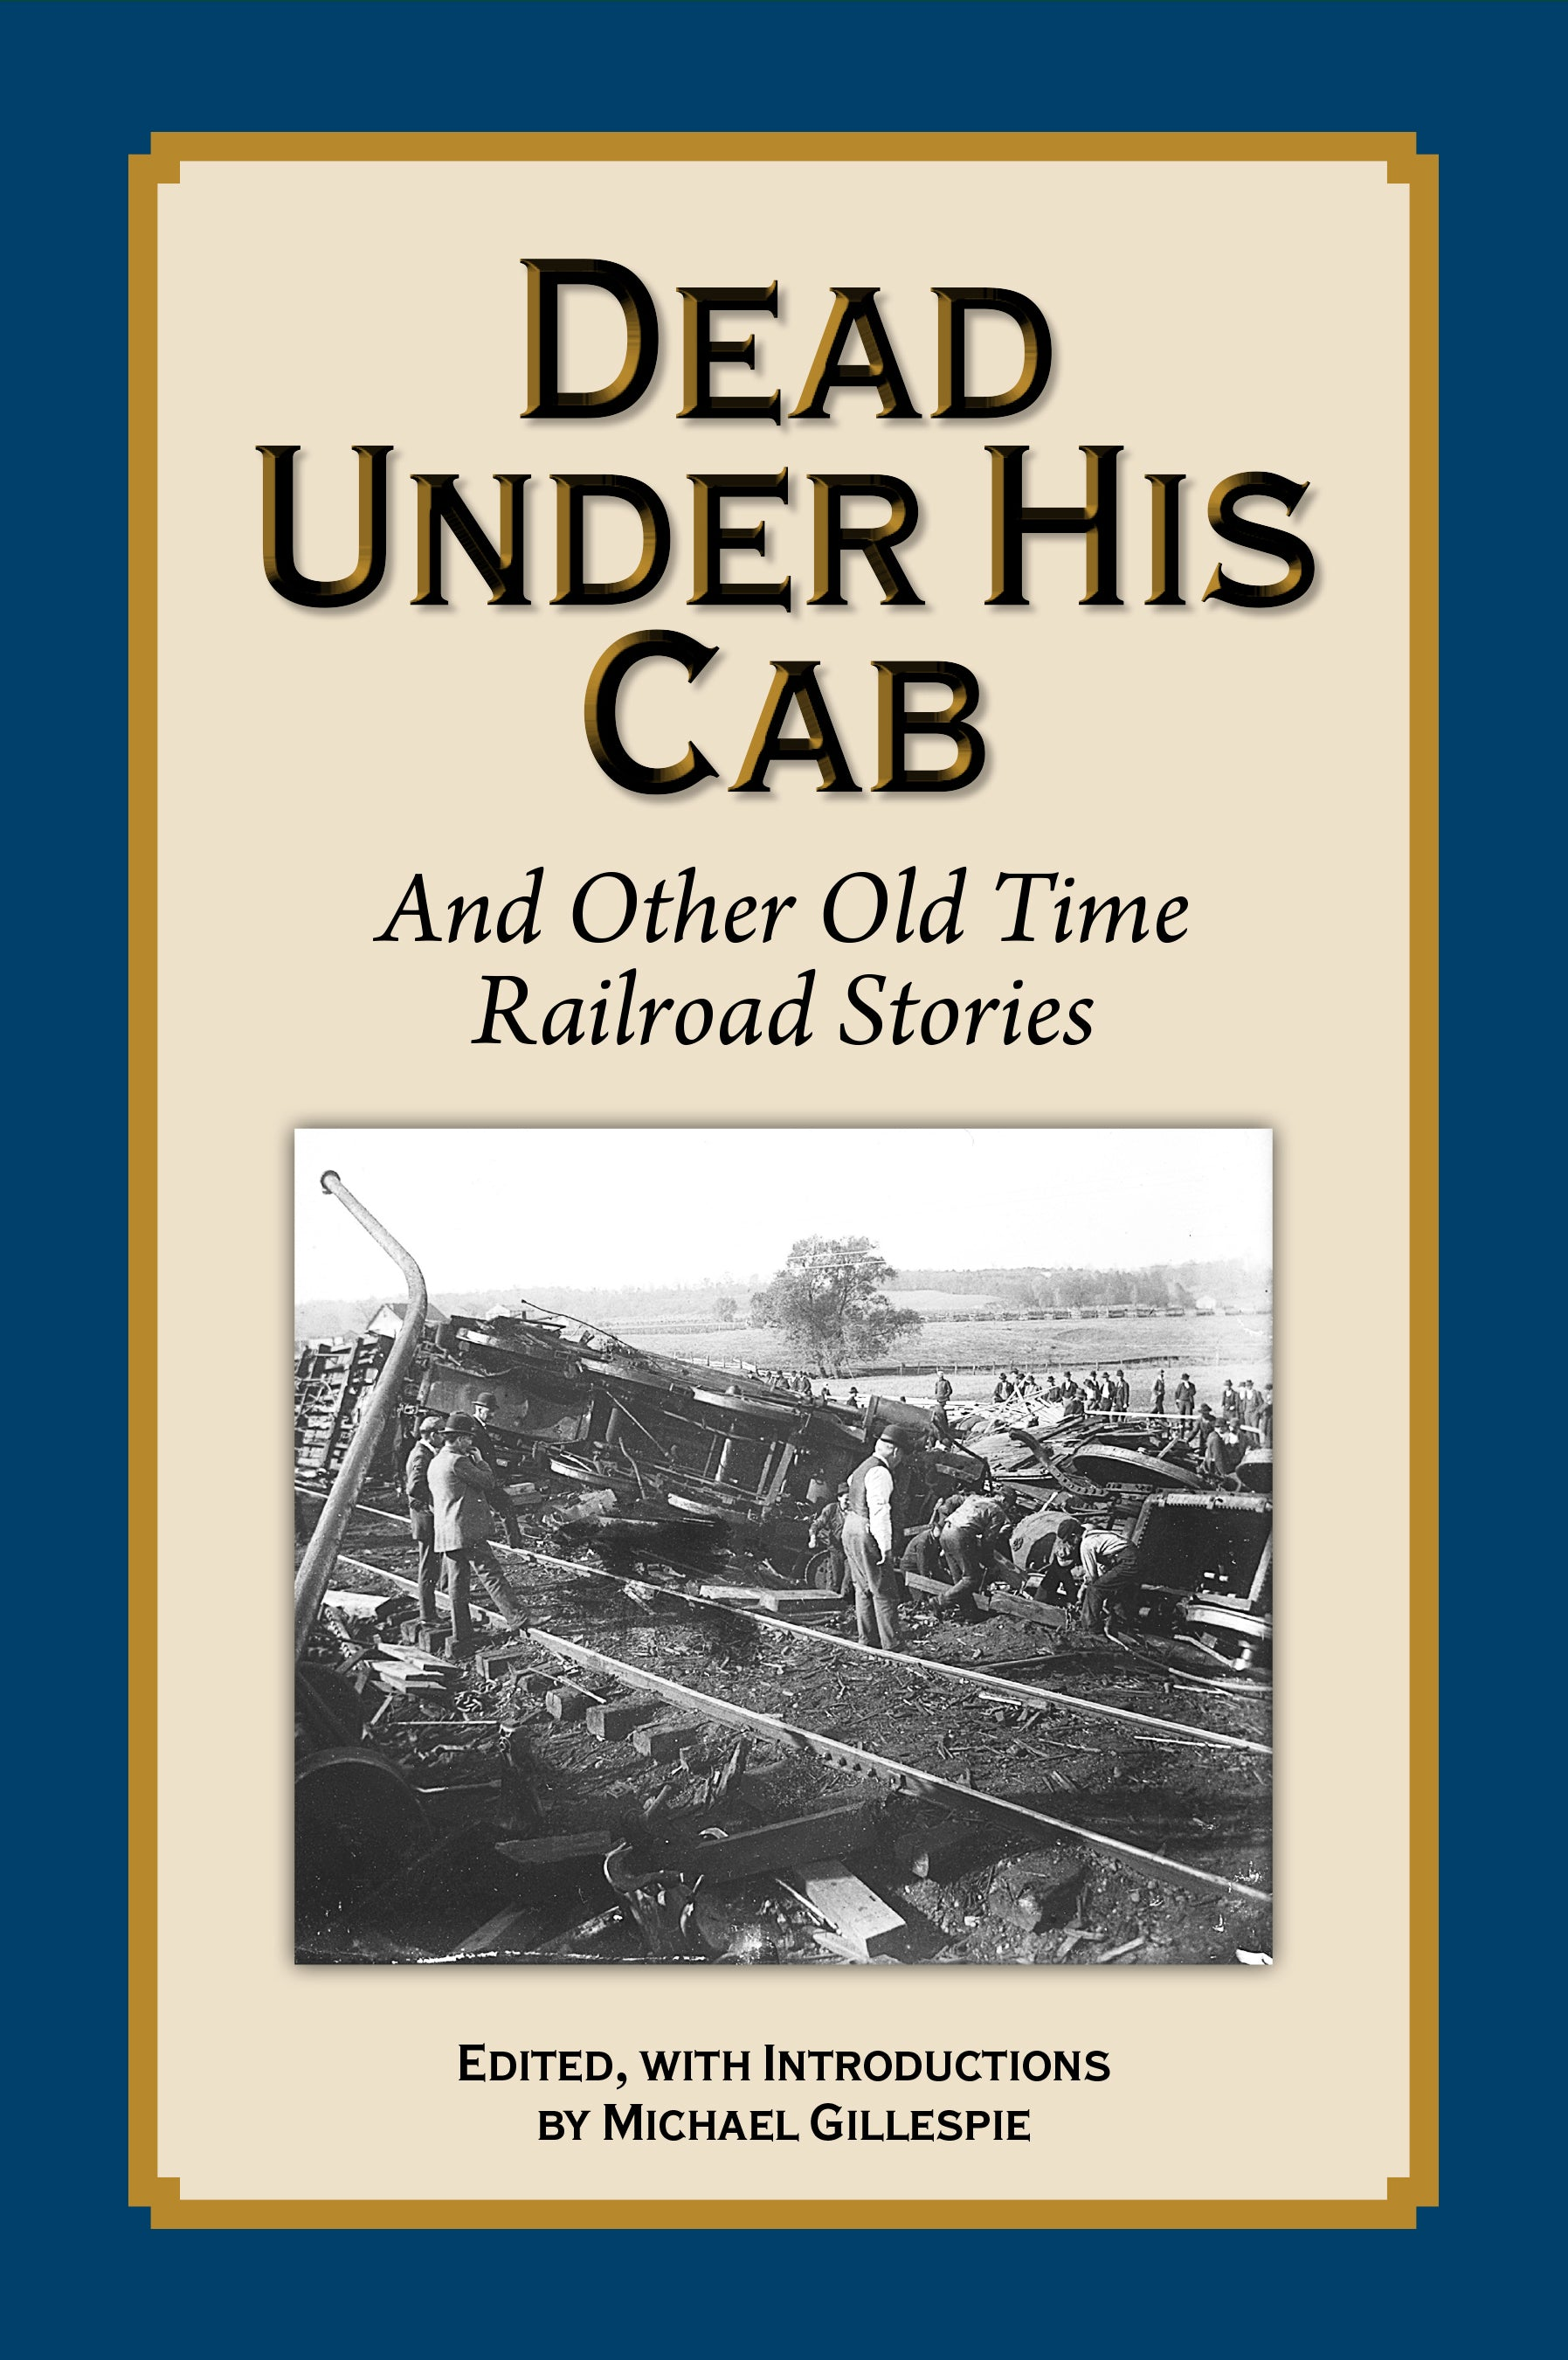 Dead Under His Cab...More Old Time Railroad Stories by Michael Gilespie